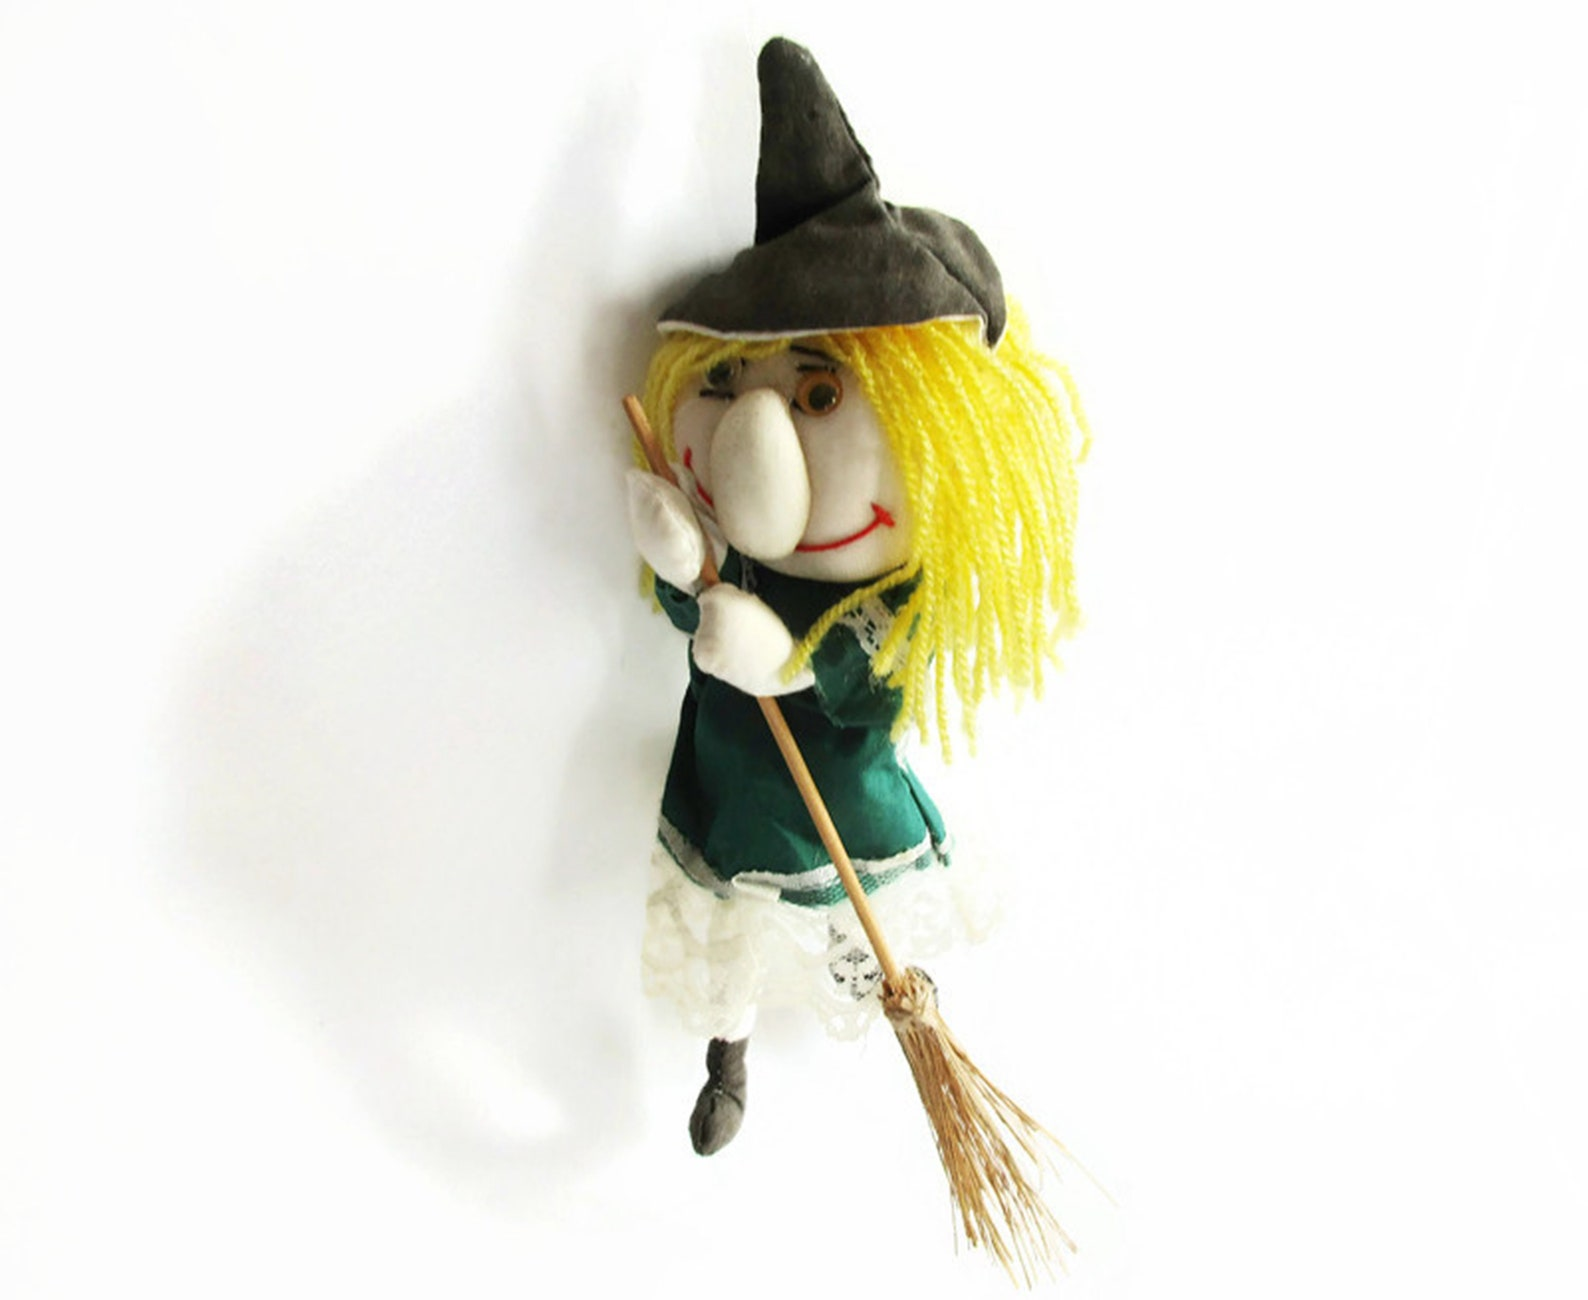 Lovely Handmade Vintage Kitchen Witch Doll, Hanging Witch on Broom, Home Decor, Made in Germany 70s